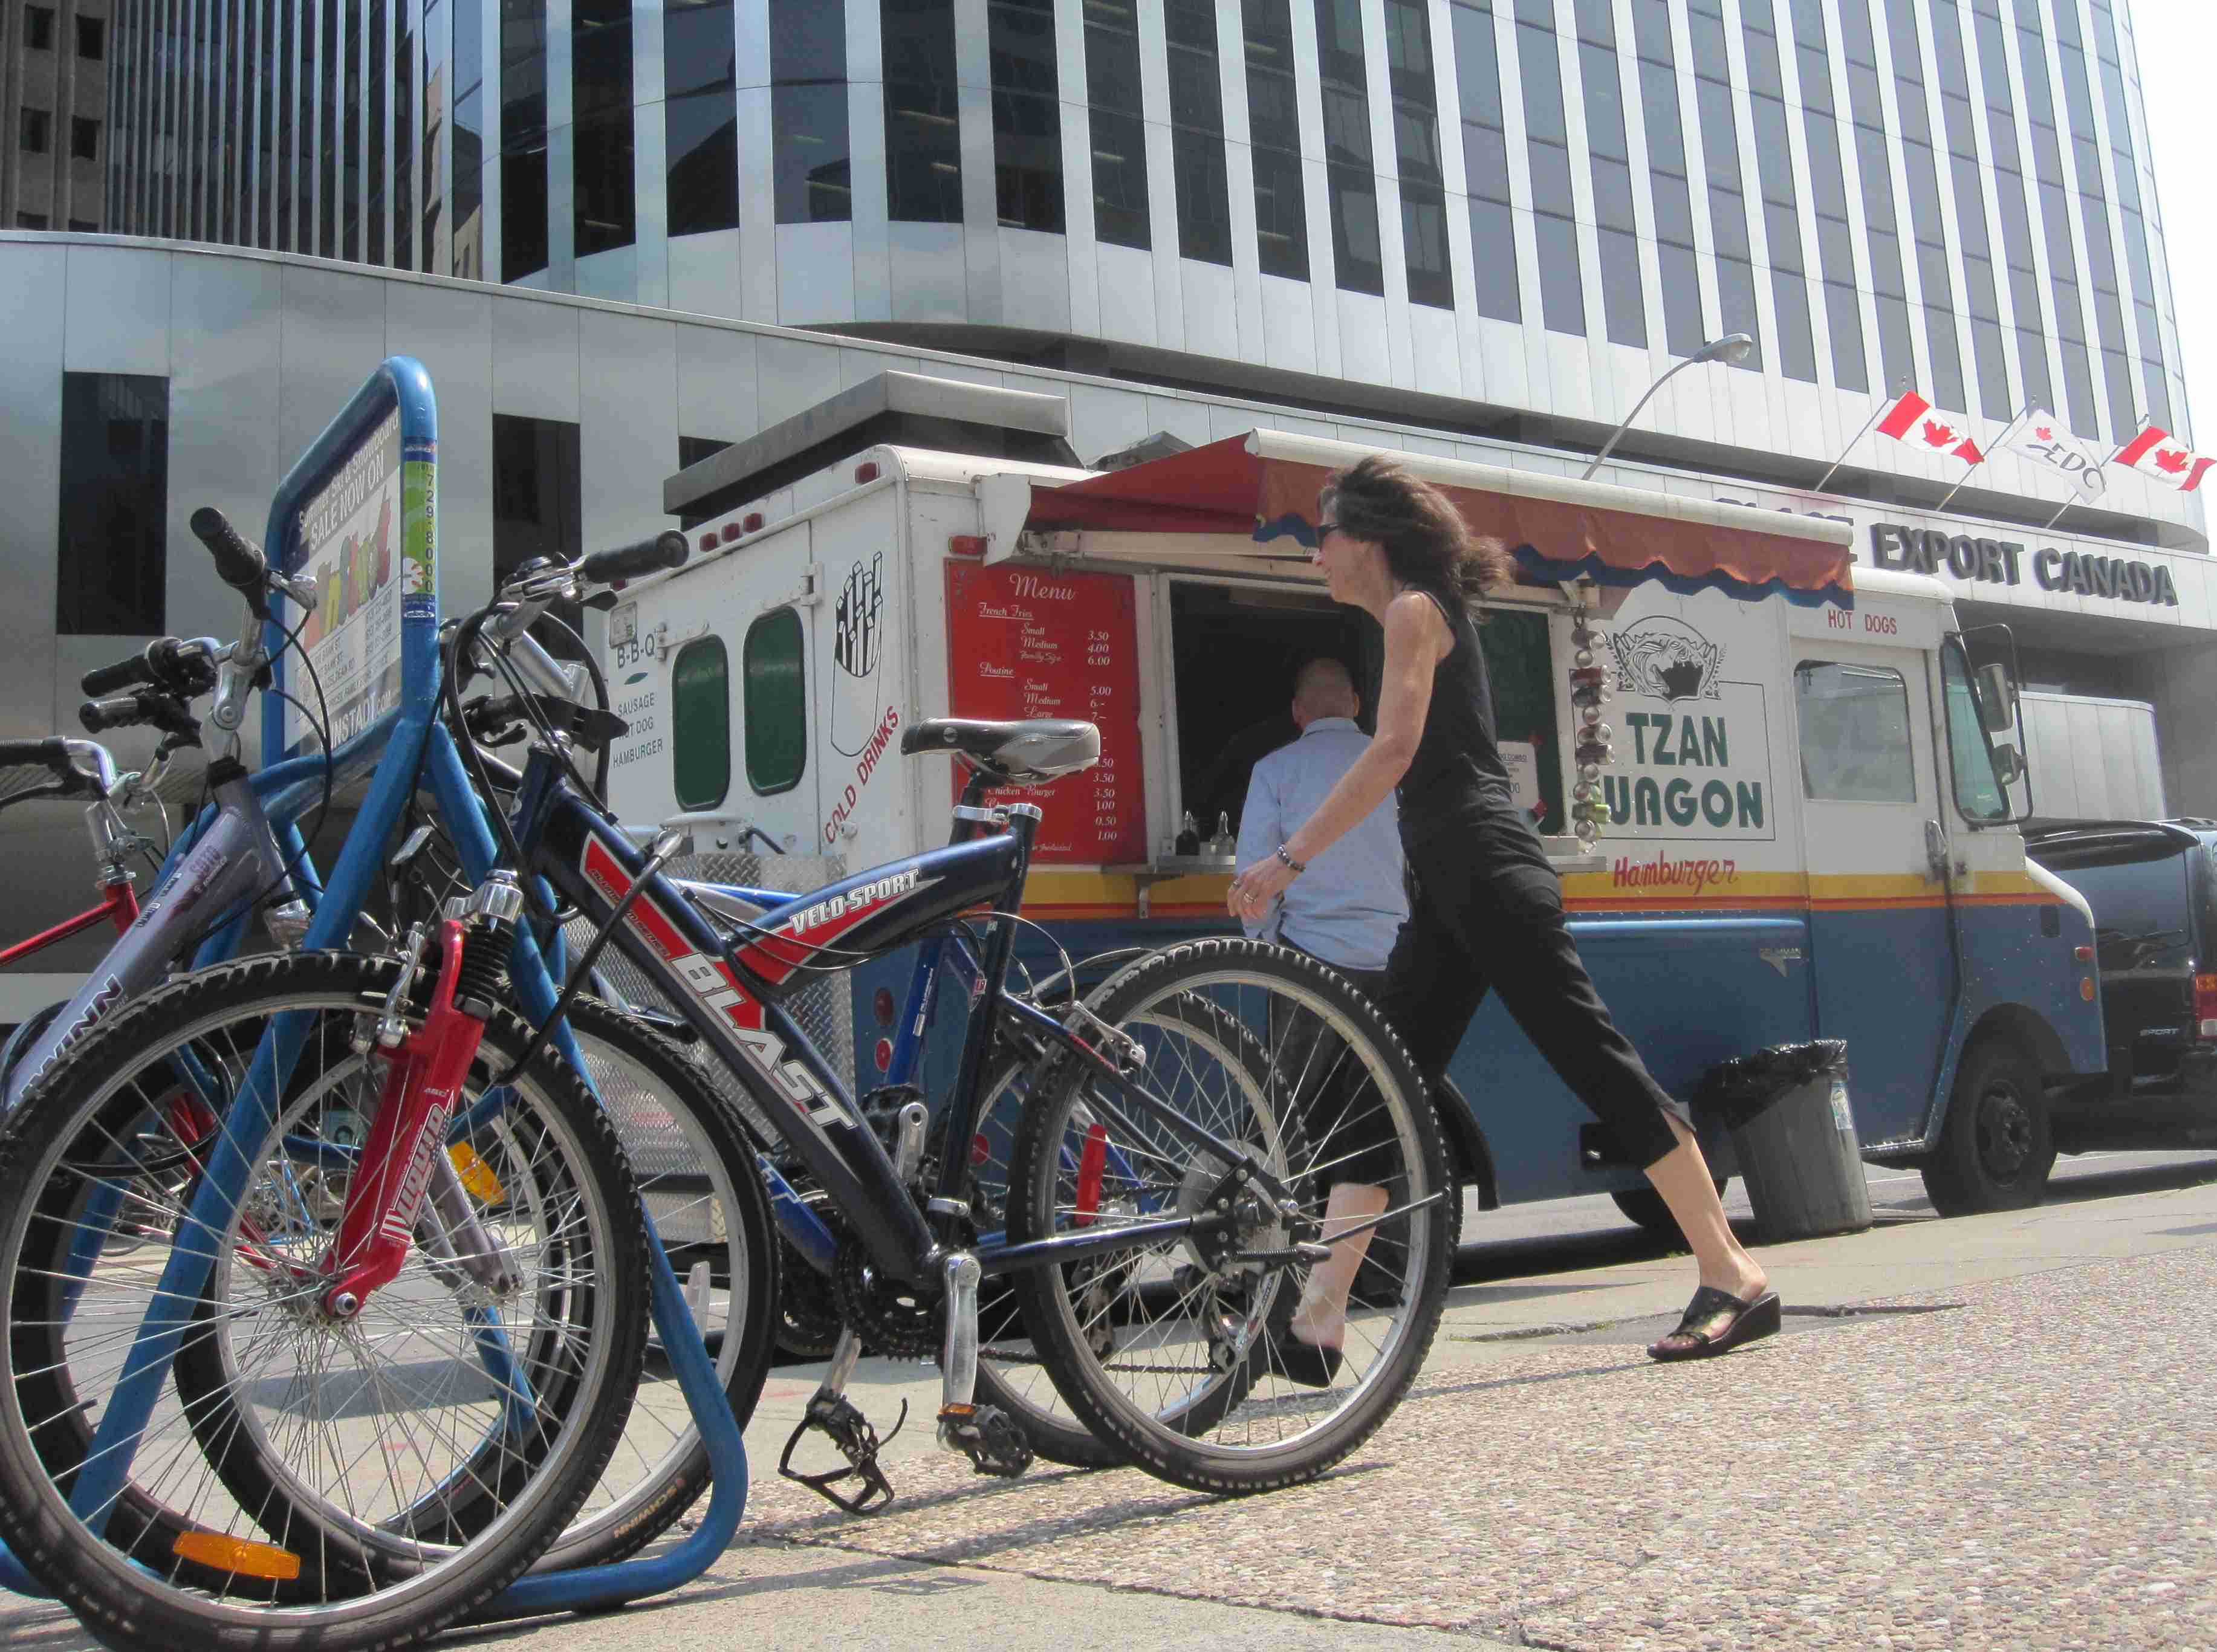 Ottawa Bicycle Culture – Tzan wagon